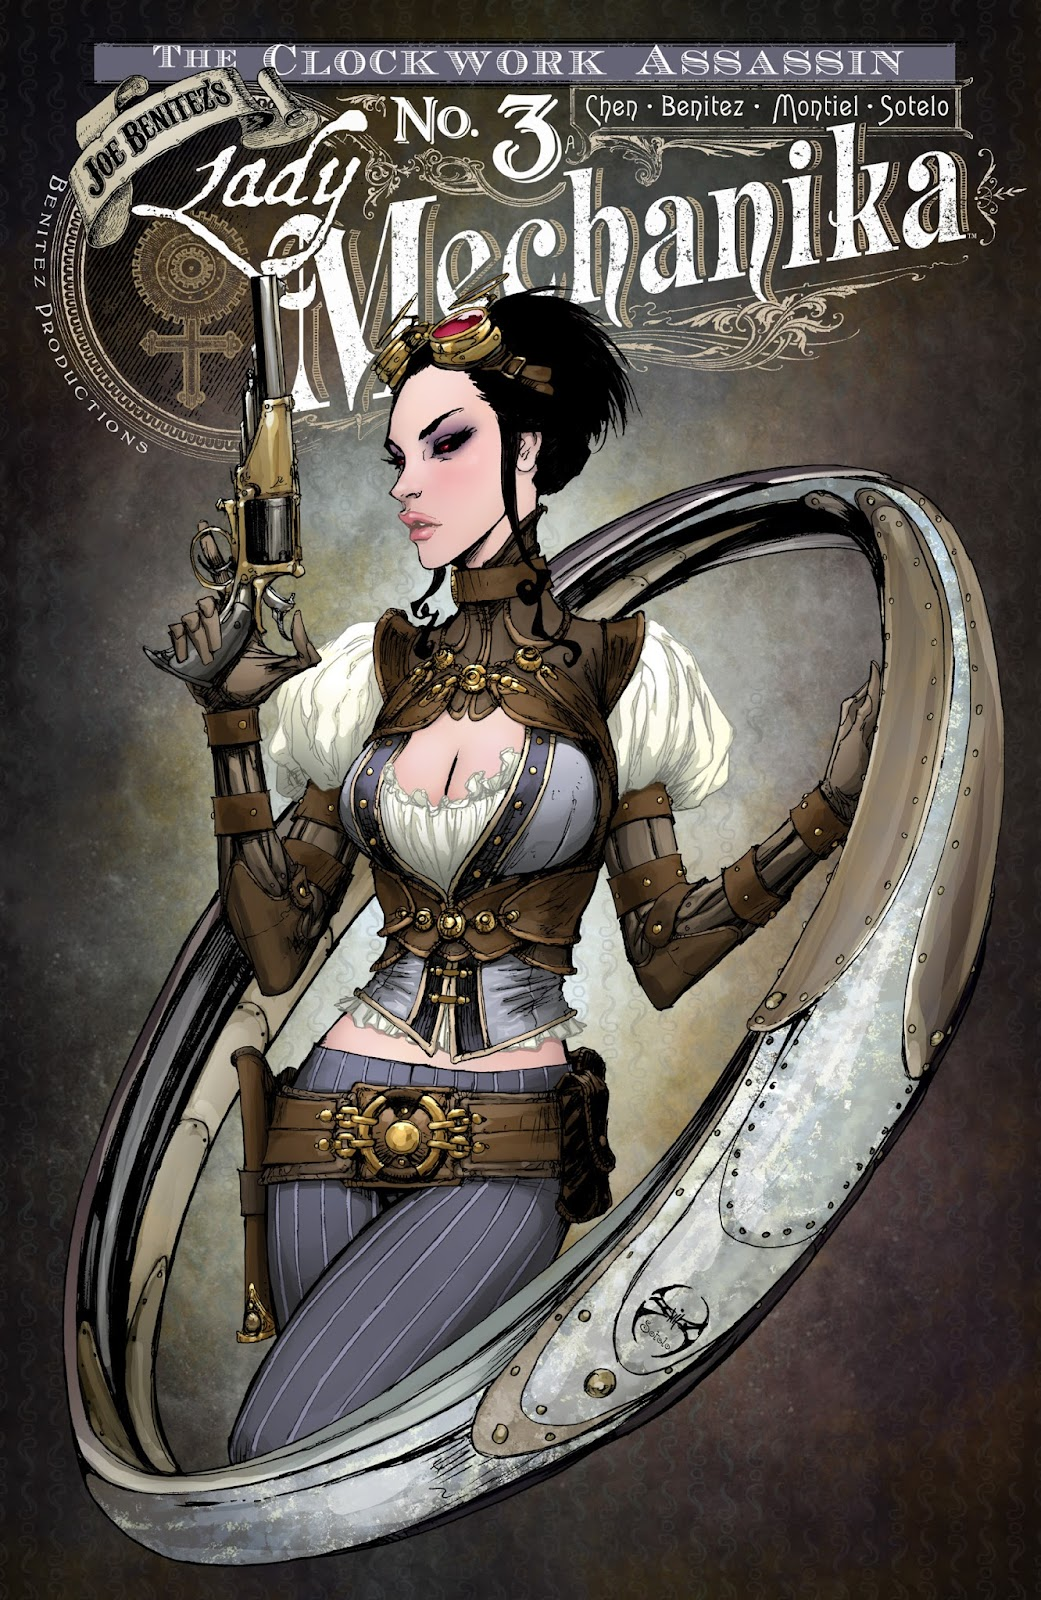 Lady Mechanika: The Clockwork Assassin issue 3 - Page 1